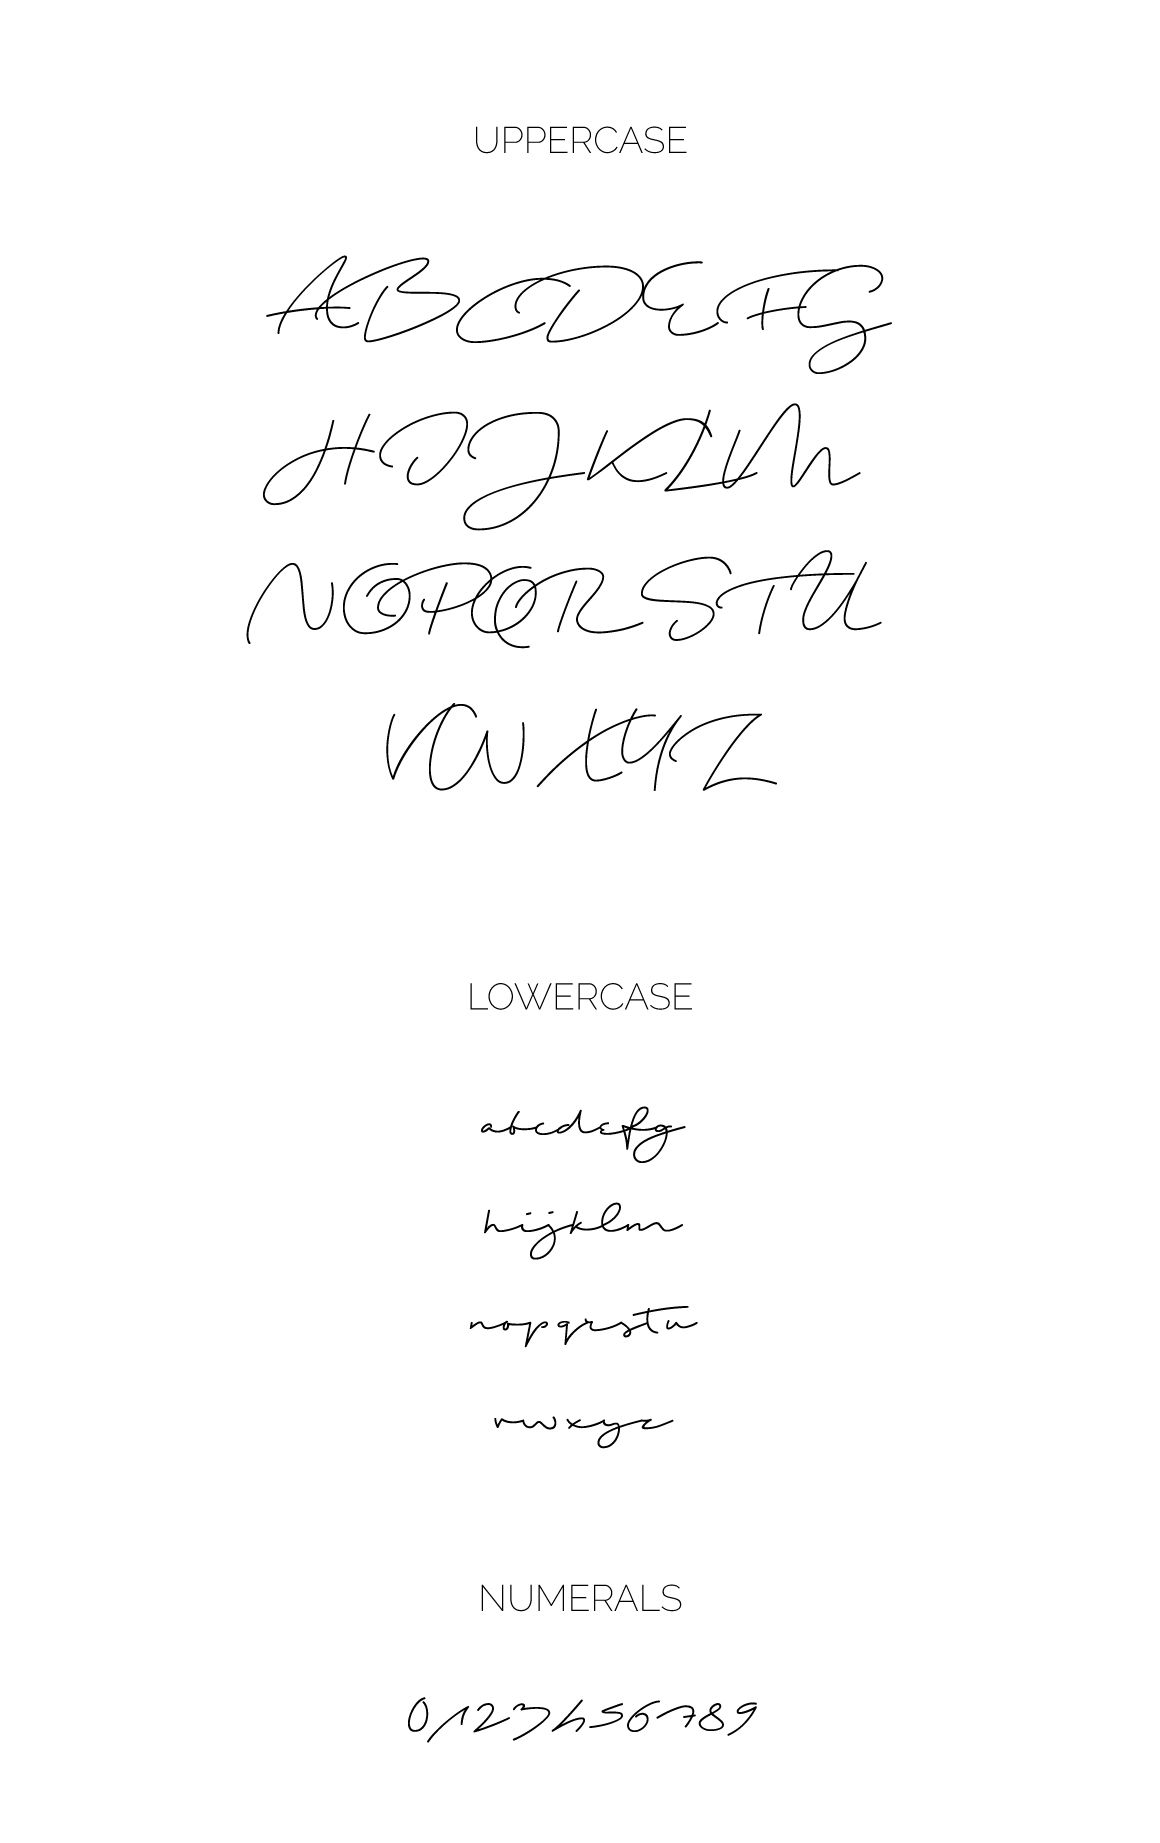 Shopping Script - Free Handwritten Script Font | Free Fonts and ...